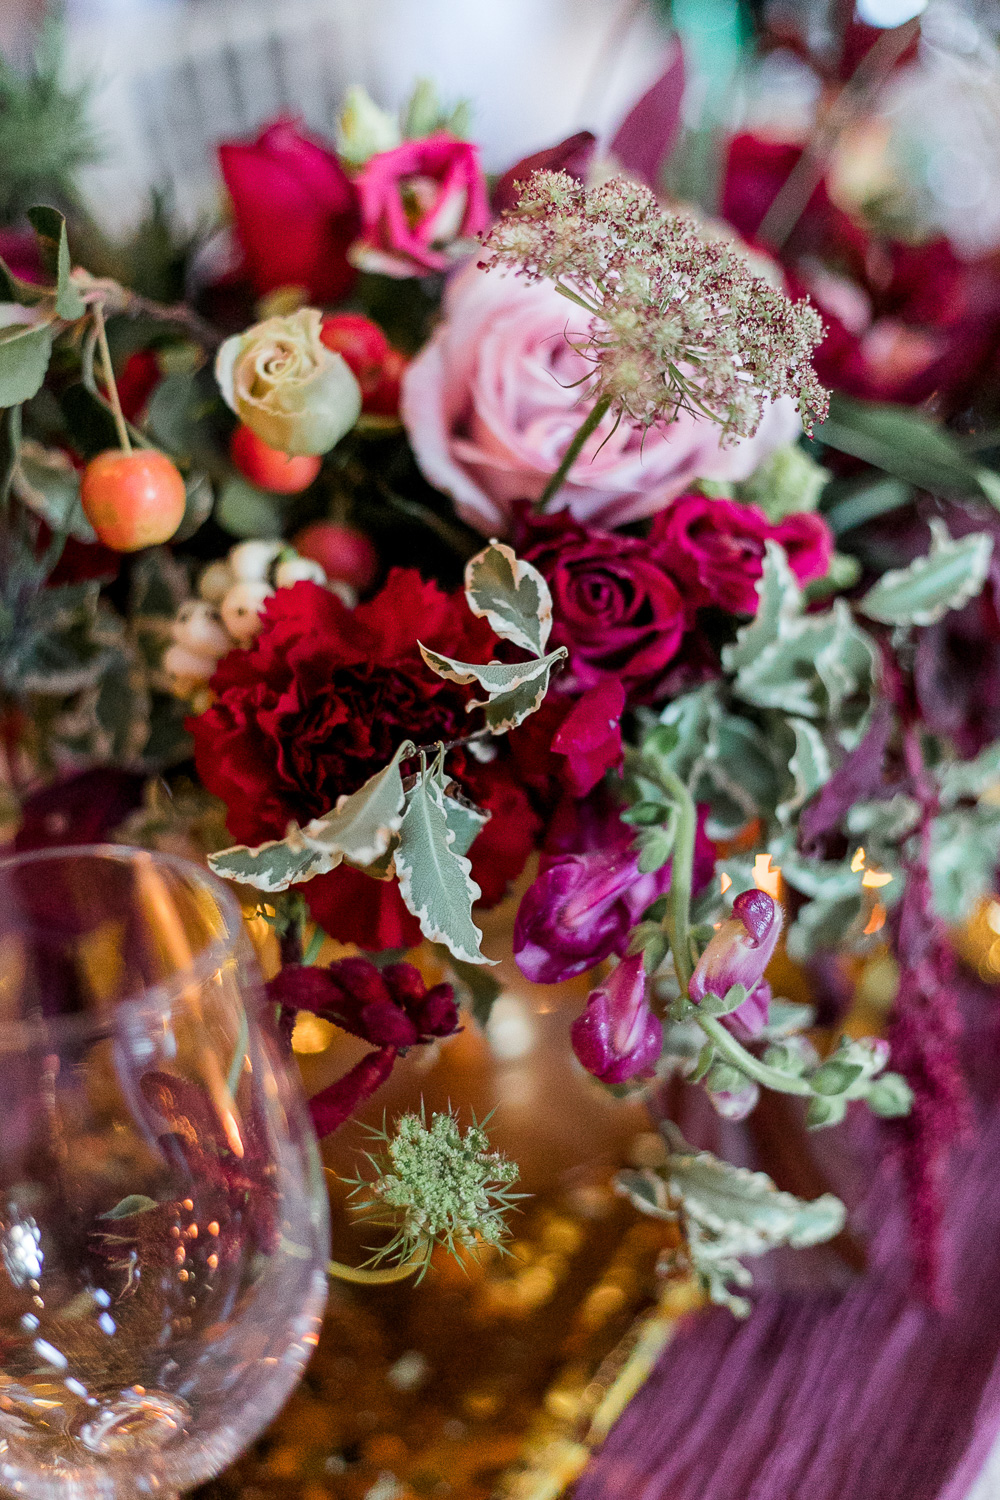 red and pink flowers for wedding table setting